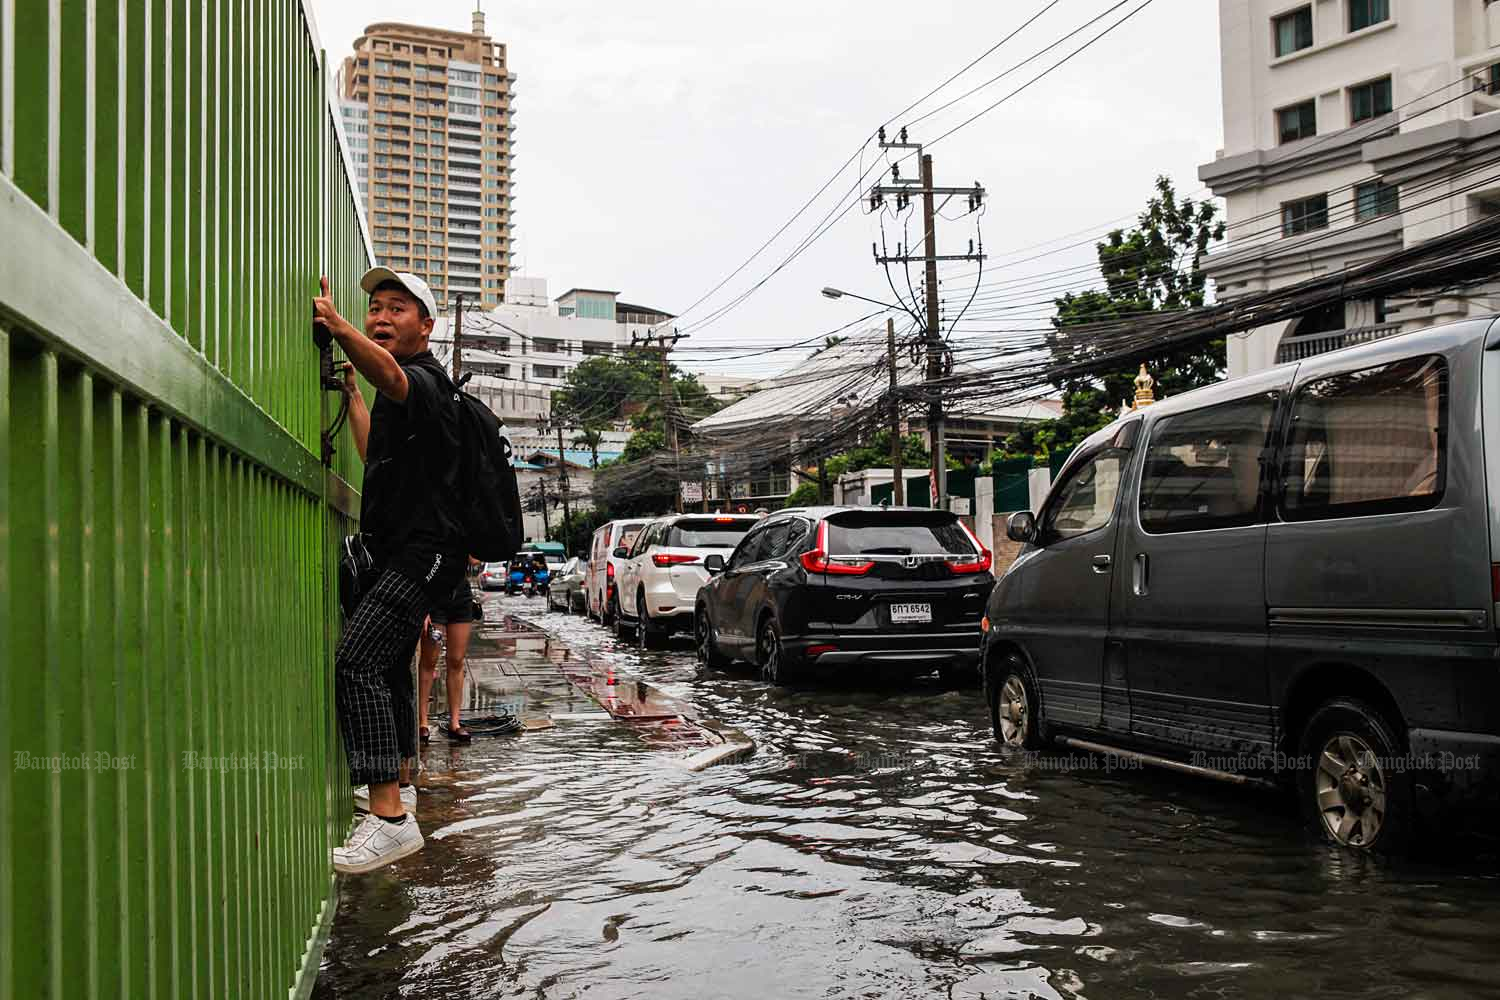 A flood in Bangkok. (Bangkok Post file photo)